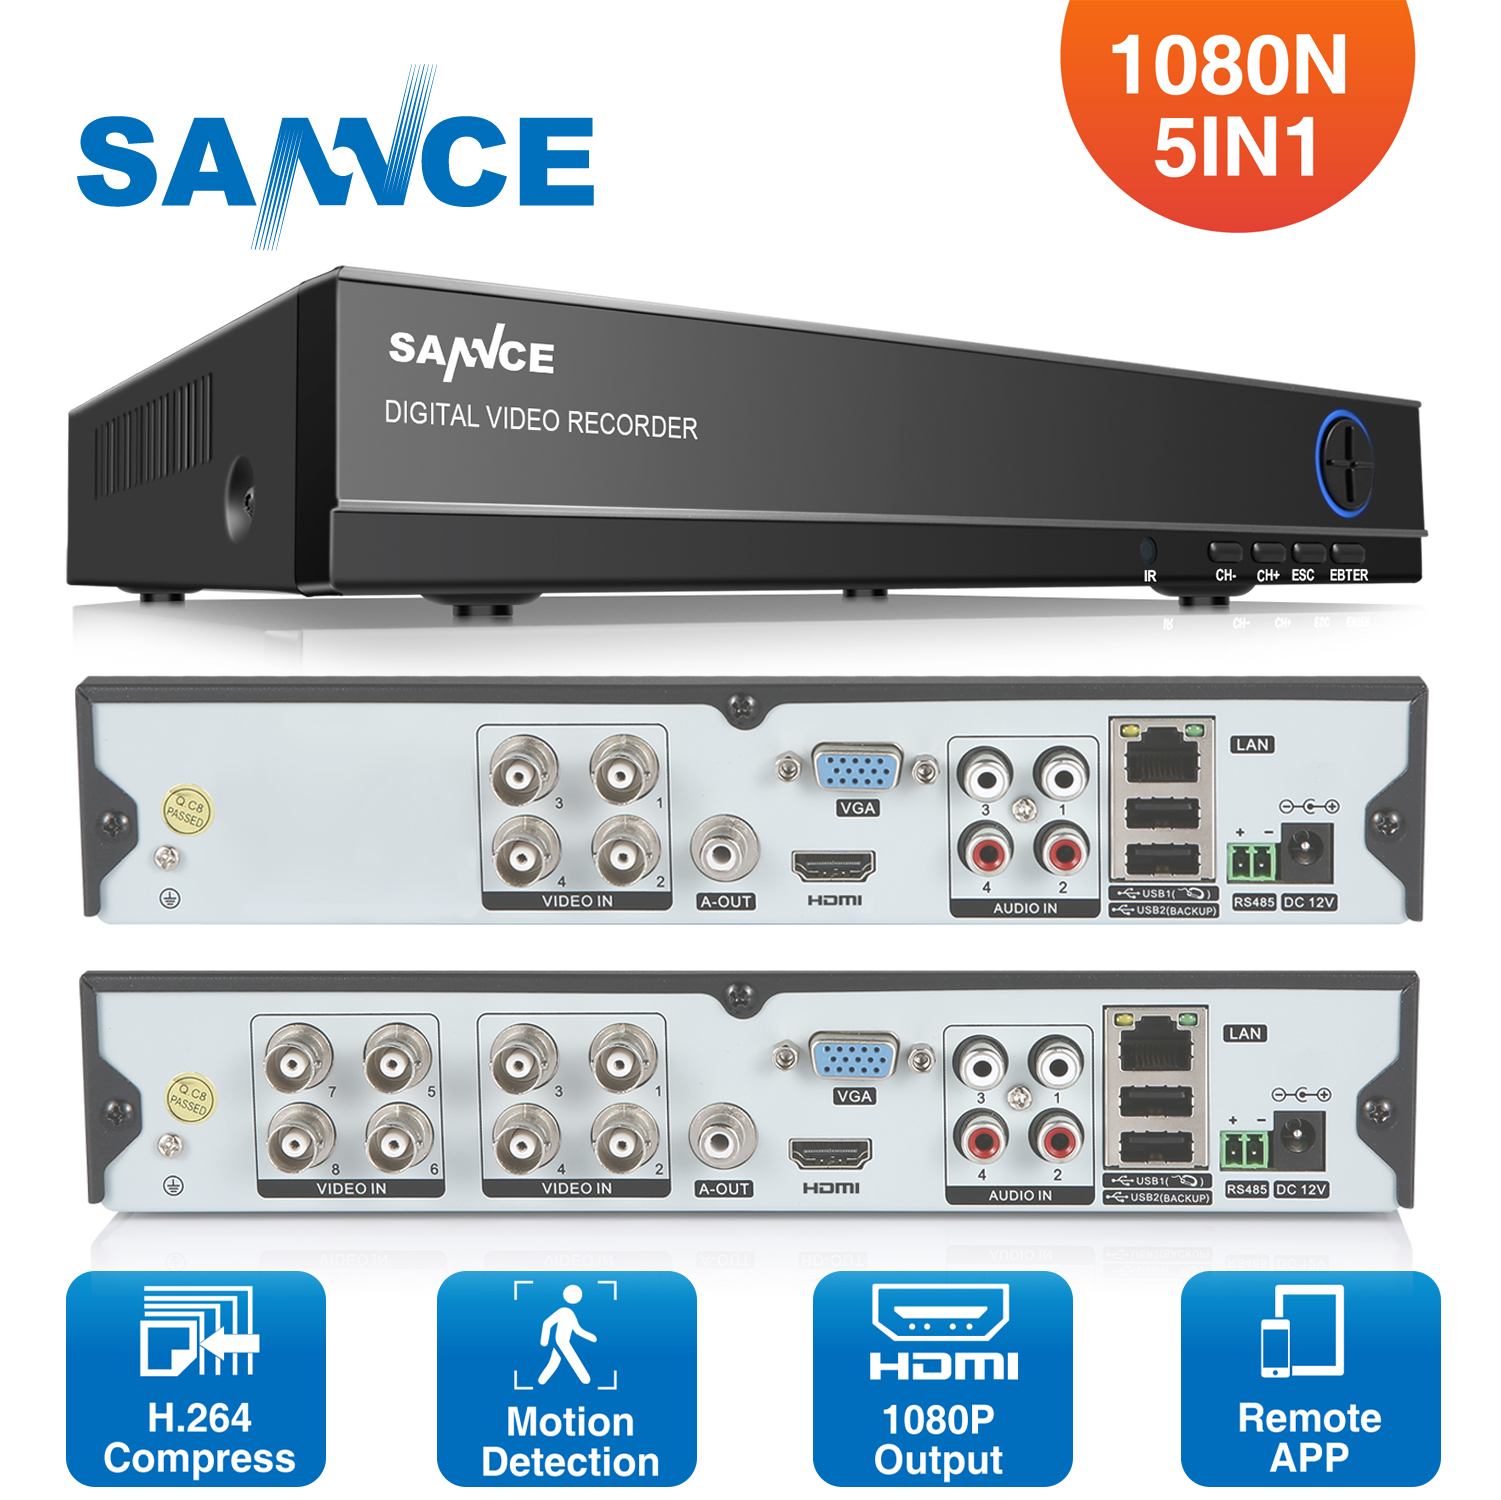 SANNCE 8 Channel 720P H.264 Video Recorder HDMI Network D1 Realtime CCTV DVR NVR HVR 8CH for Home Security Camera System